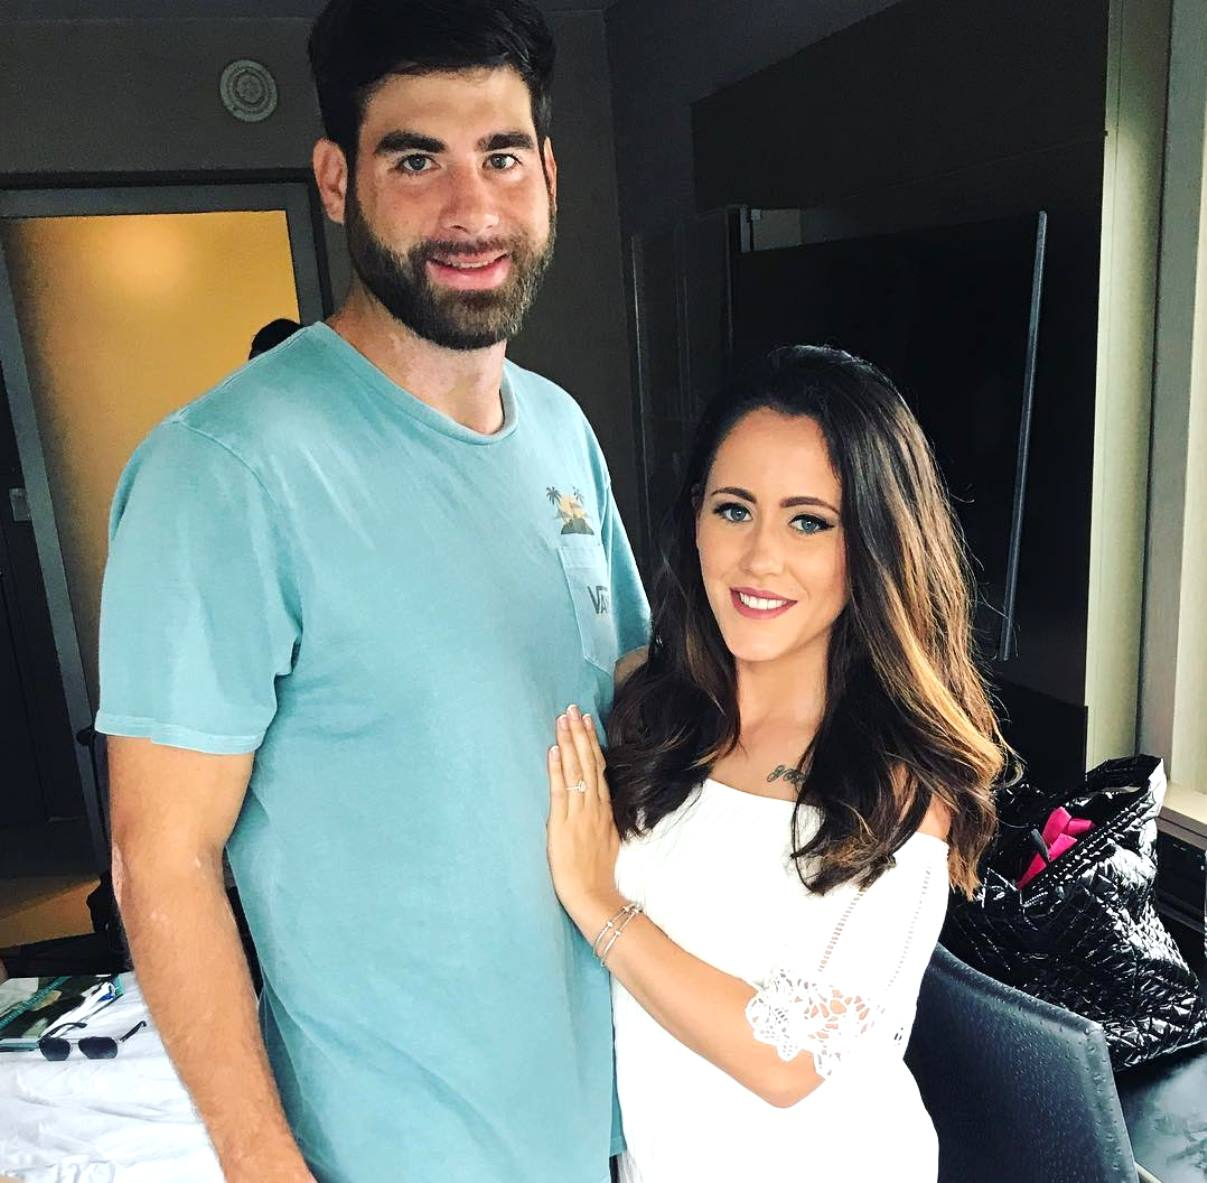 Teen Mom 2's Jenelle Evans' Rep Talks Assault after Hospitalization & 911 Call